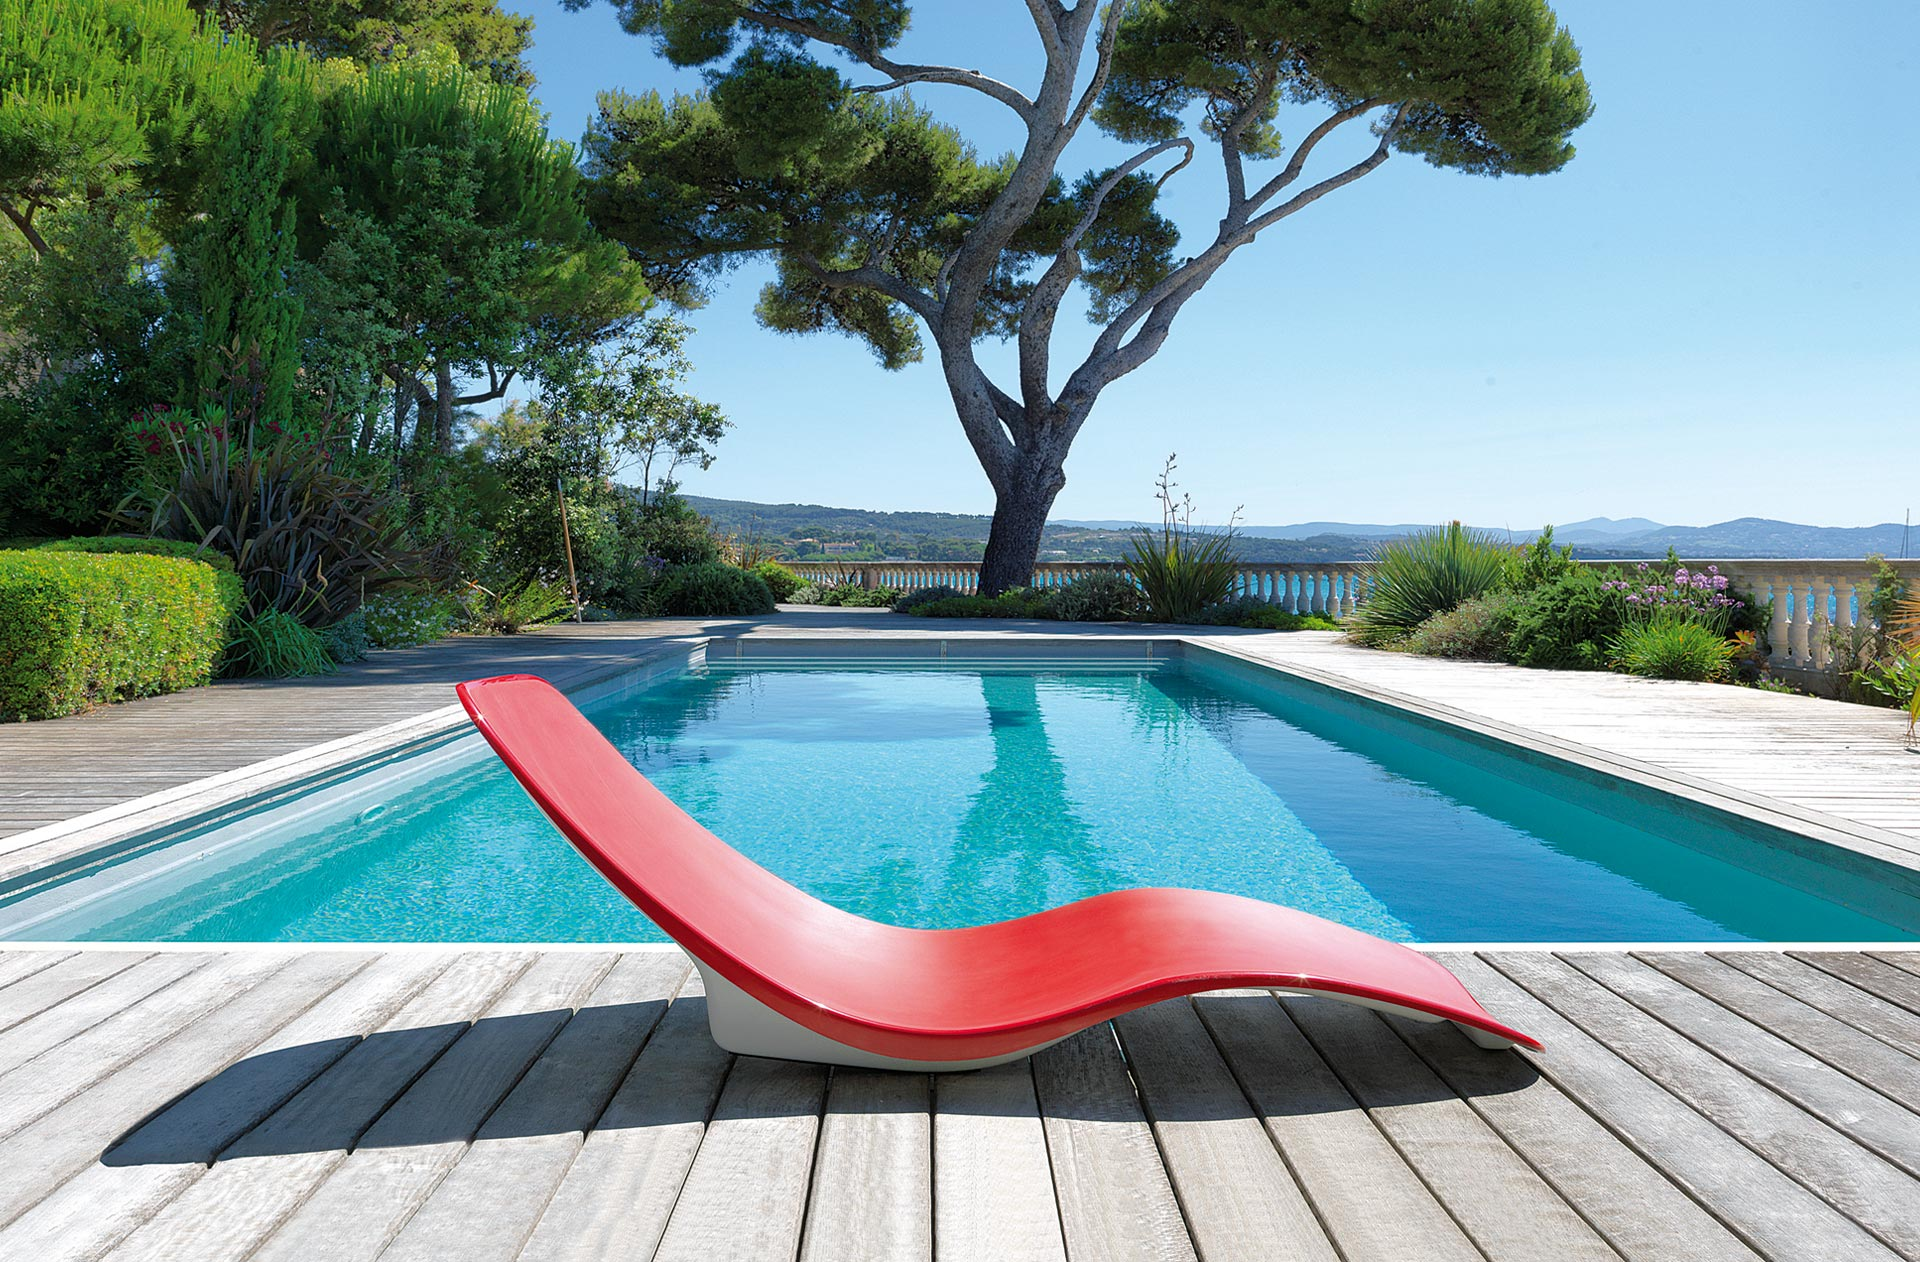 construction de piscines b ton aluminium et en kit marseille. Black Bedroom Furniture Sets. Home Design Ideas